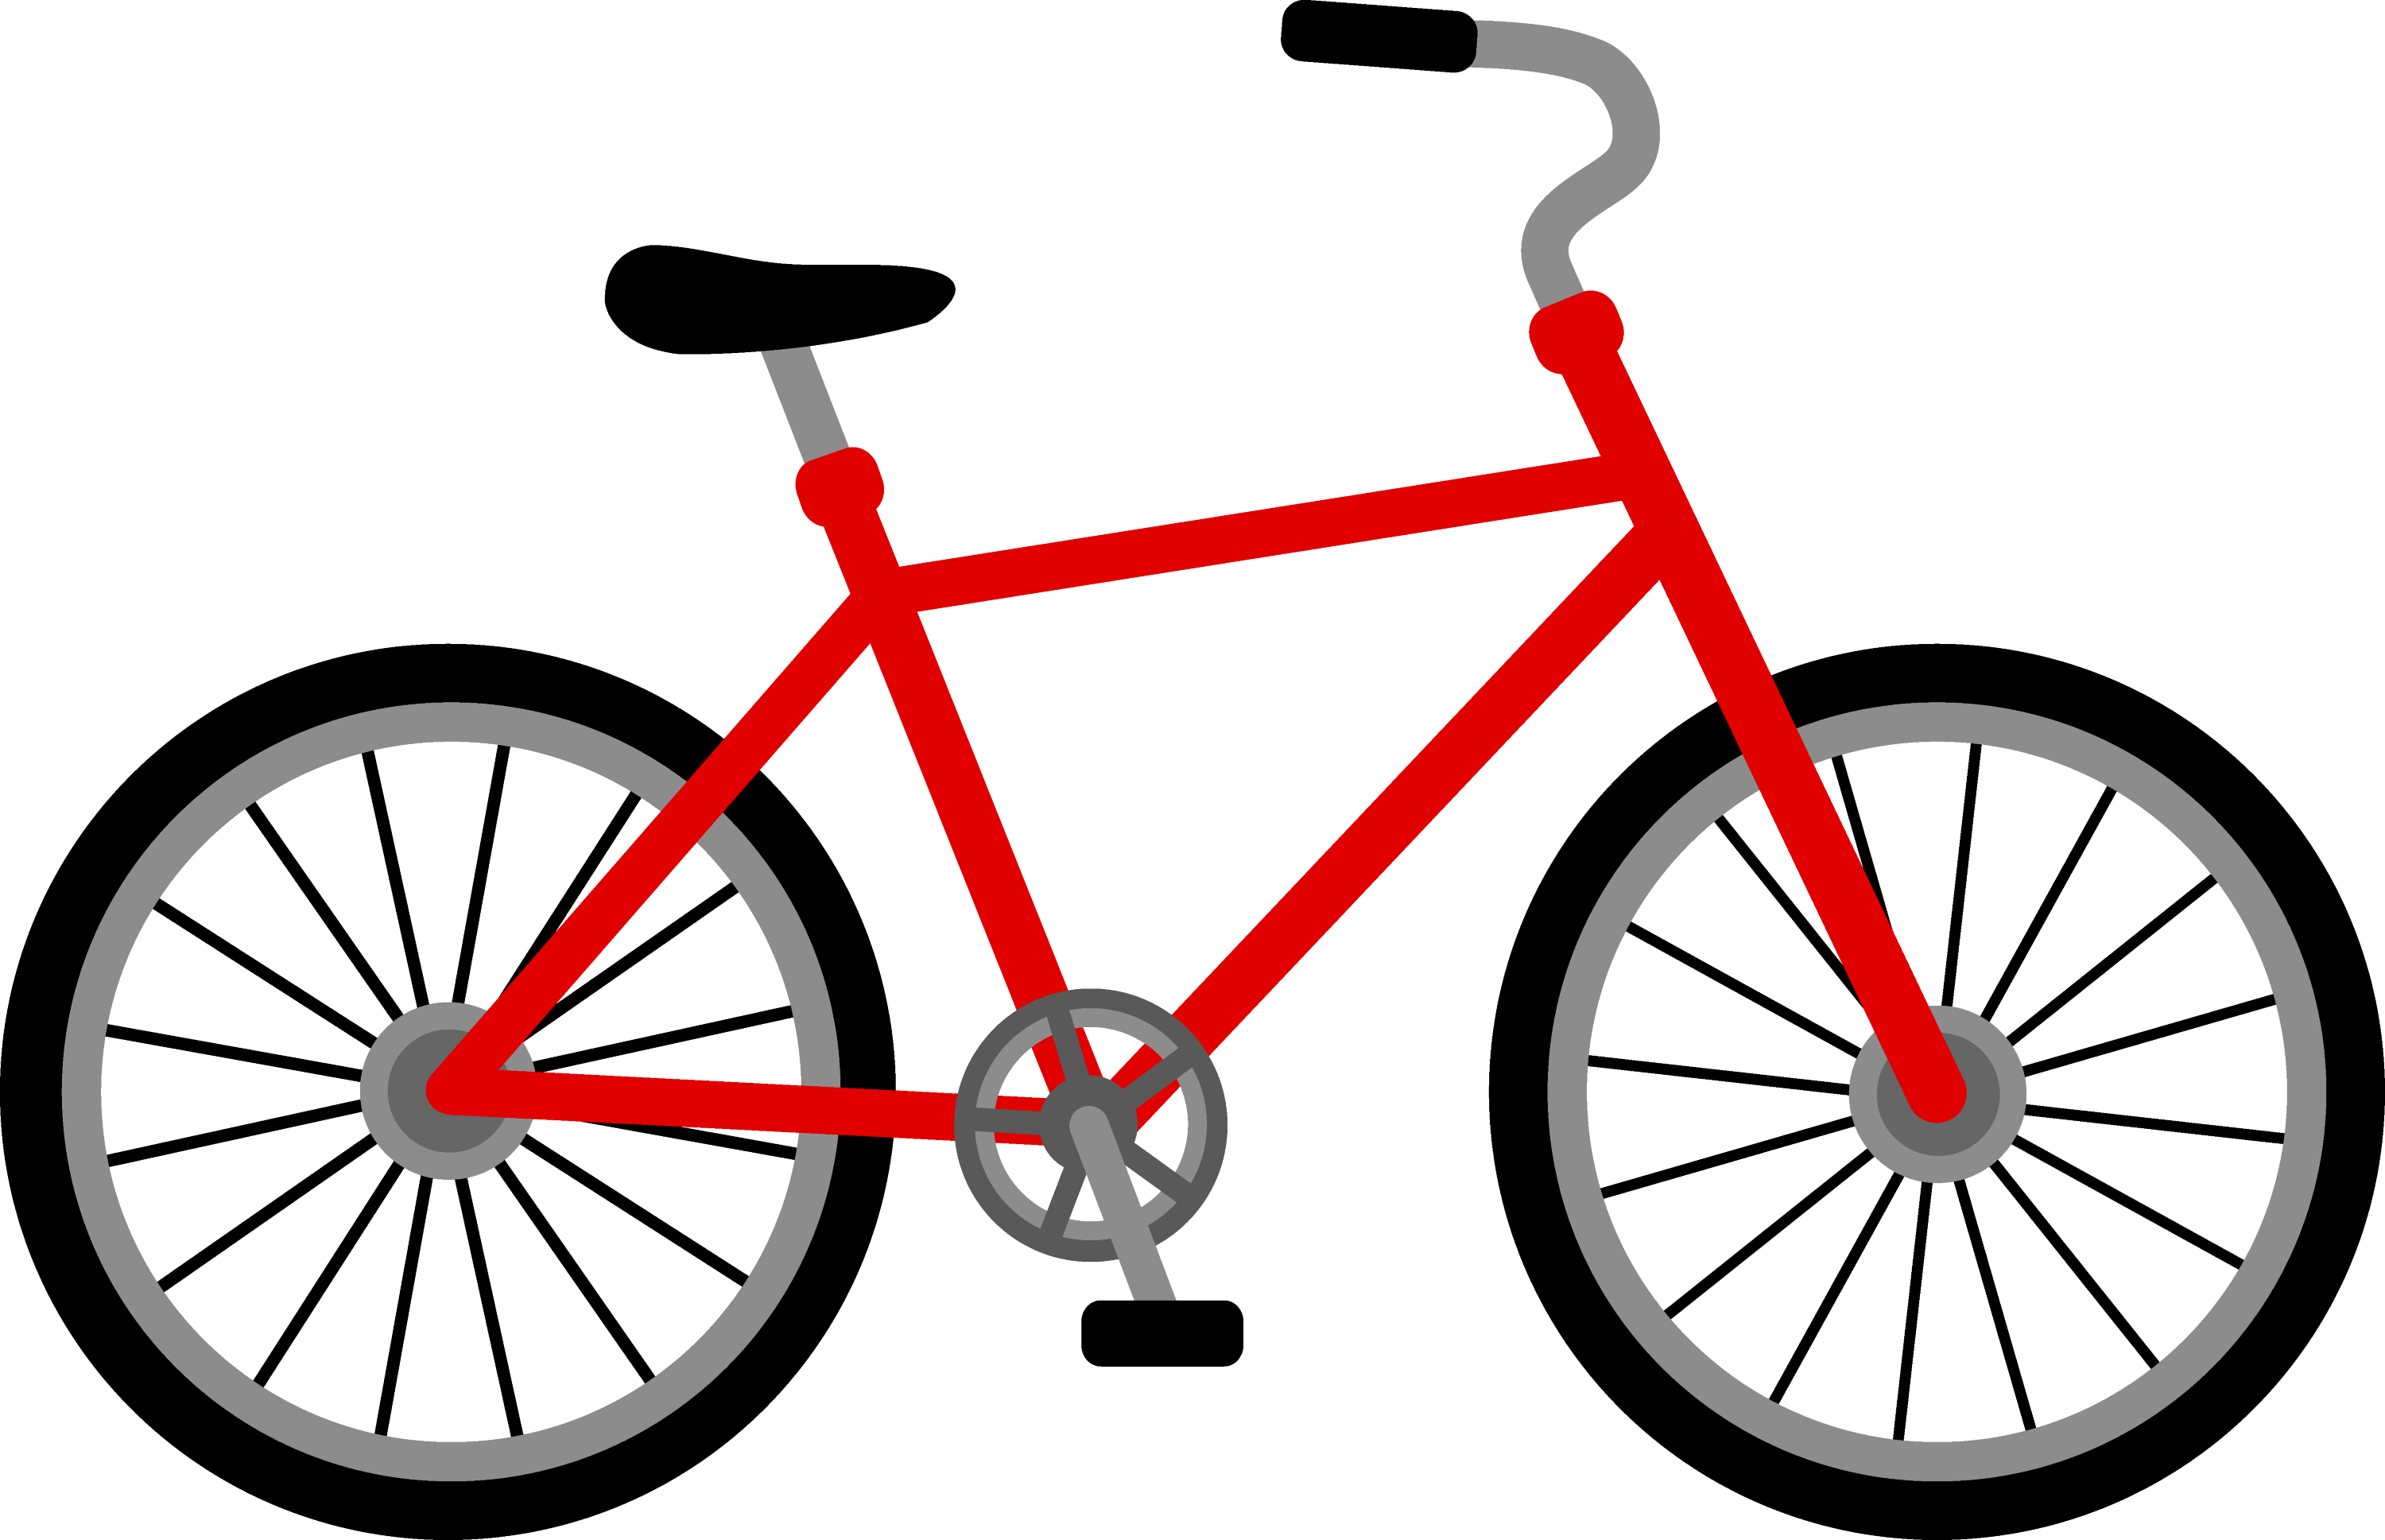 Red Bicycle Design  Free Clip Art